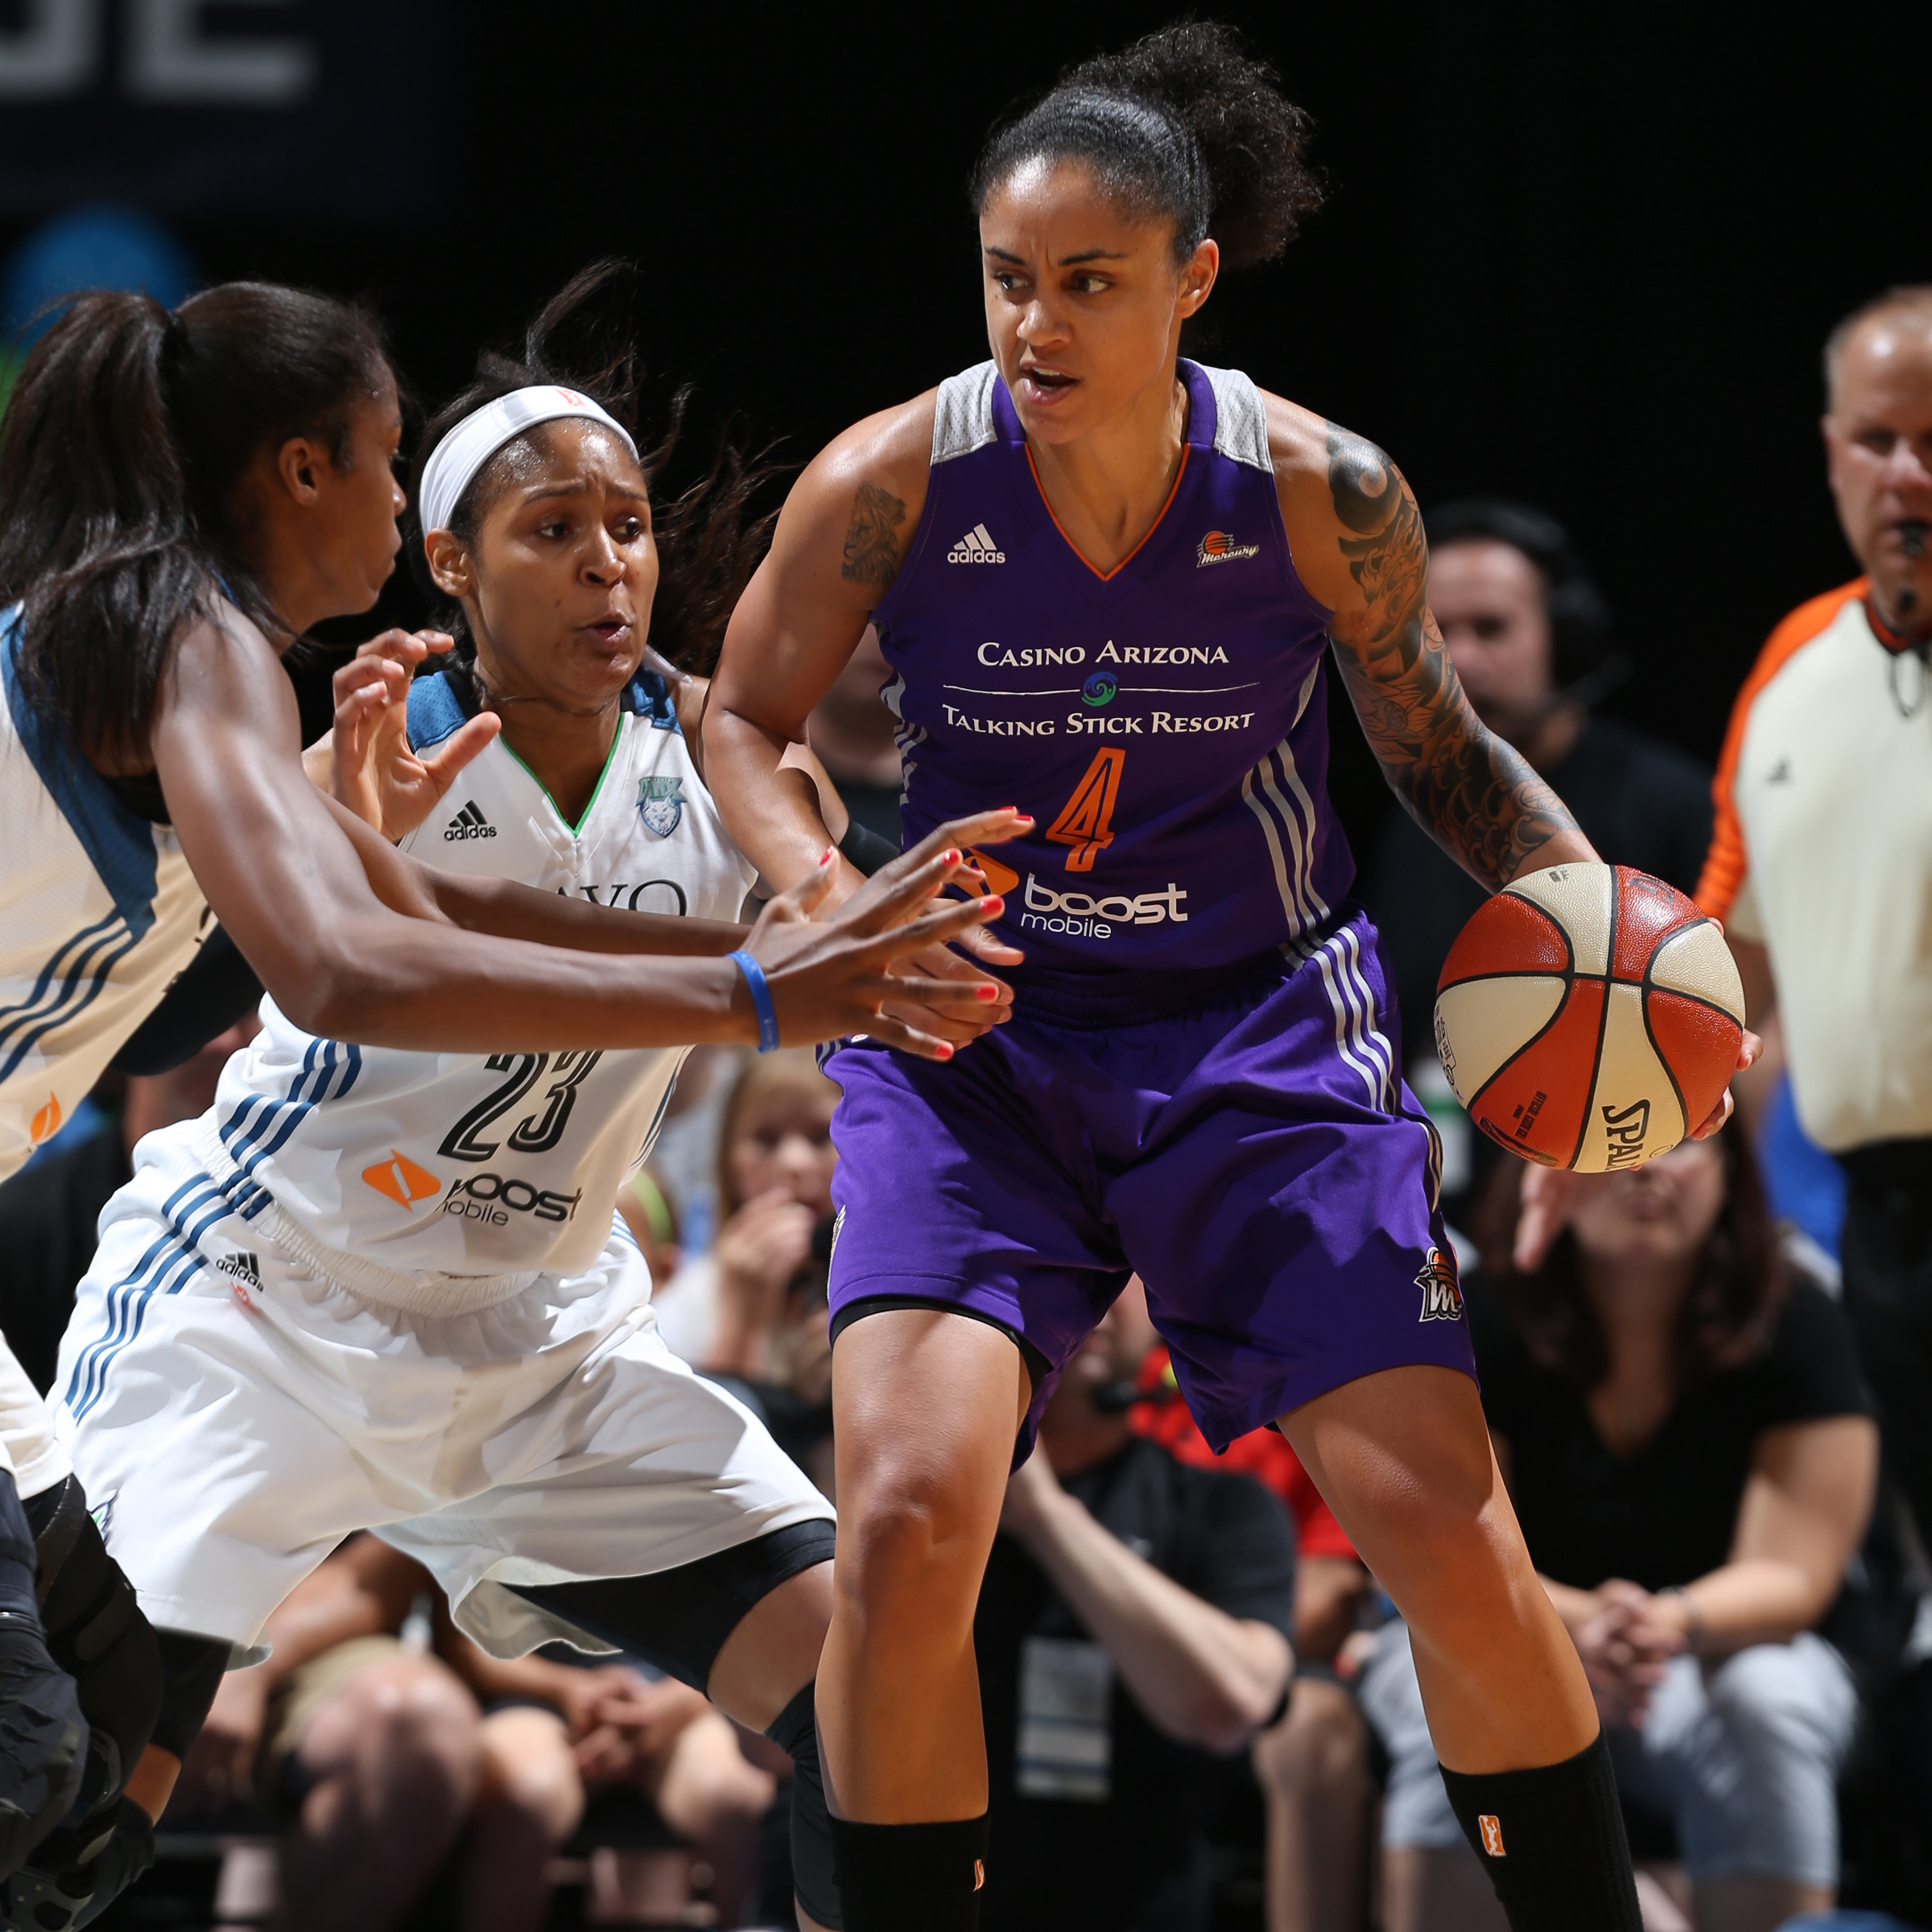 Mercury forward Candice Dupree struggled against the Lynx, scoring just eight points on 3-of-7 shooting while committing five turnovers in the loss.